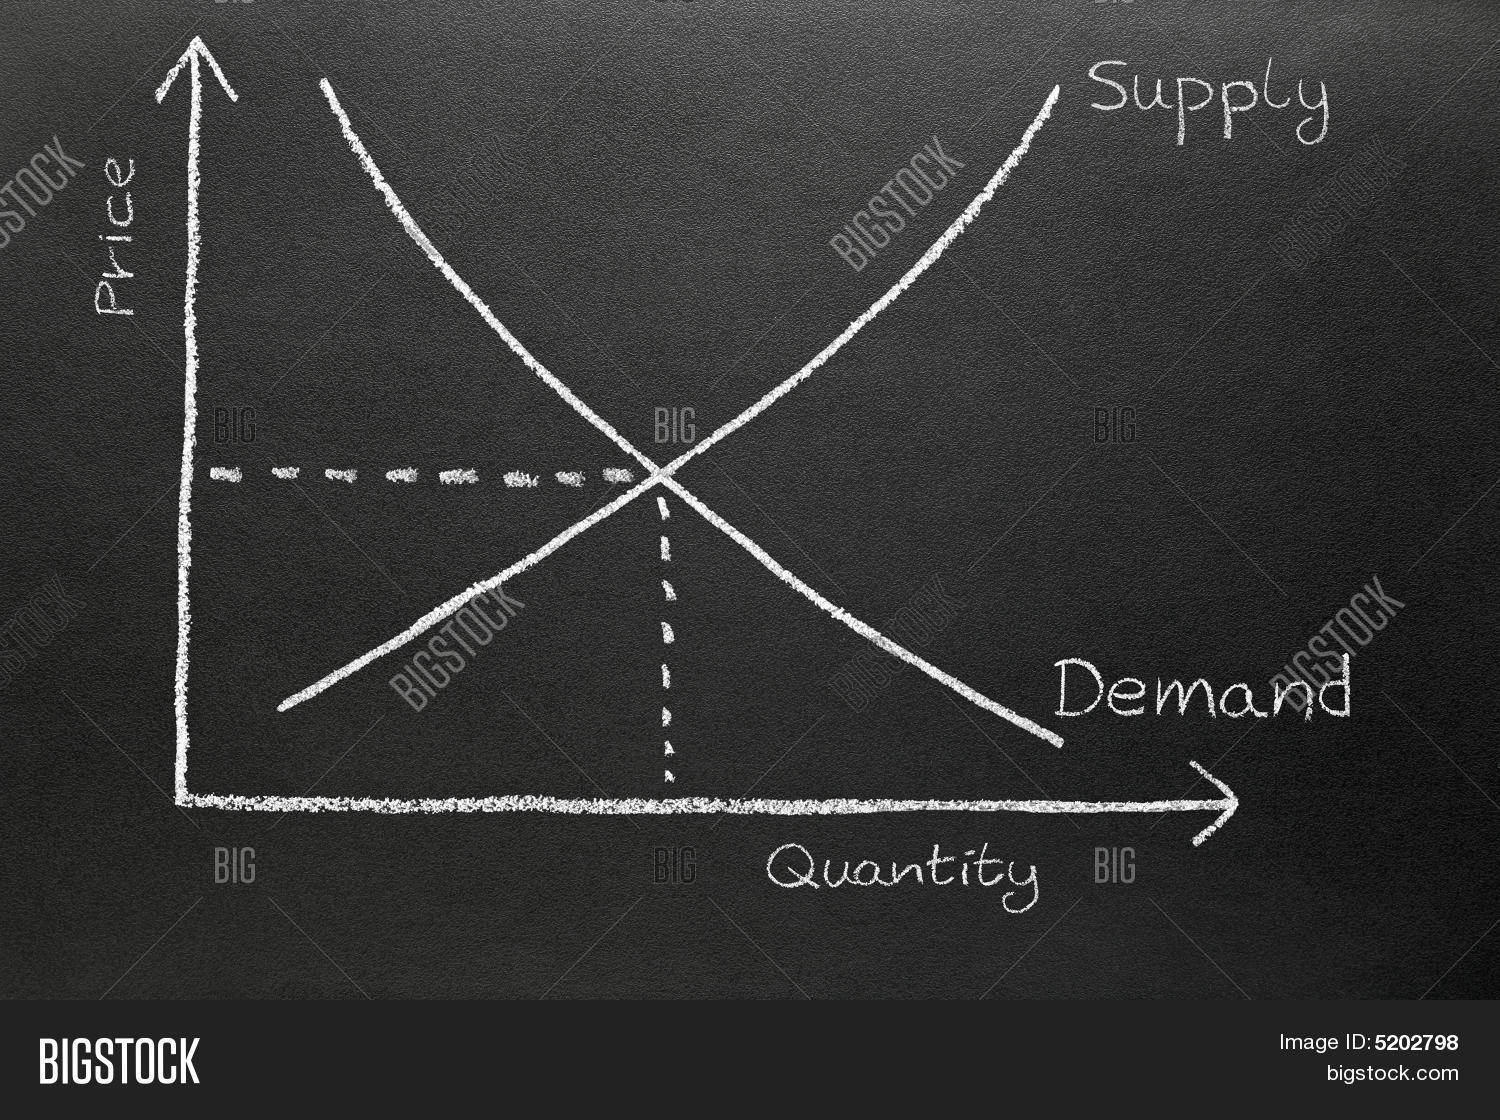 Supply Demand Chart Image Amp Photo Free Trial